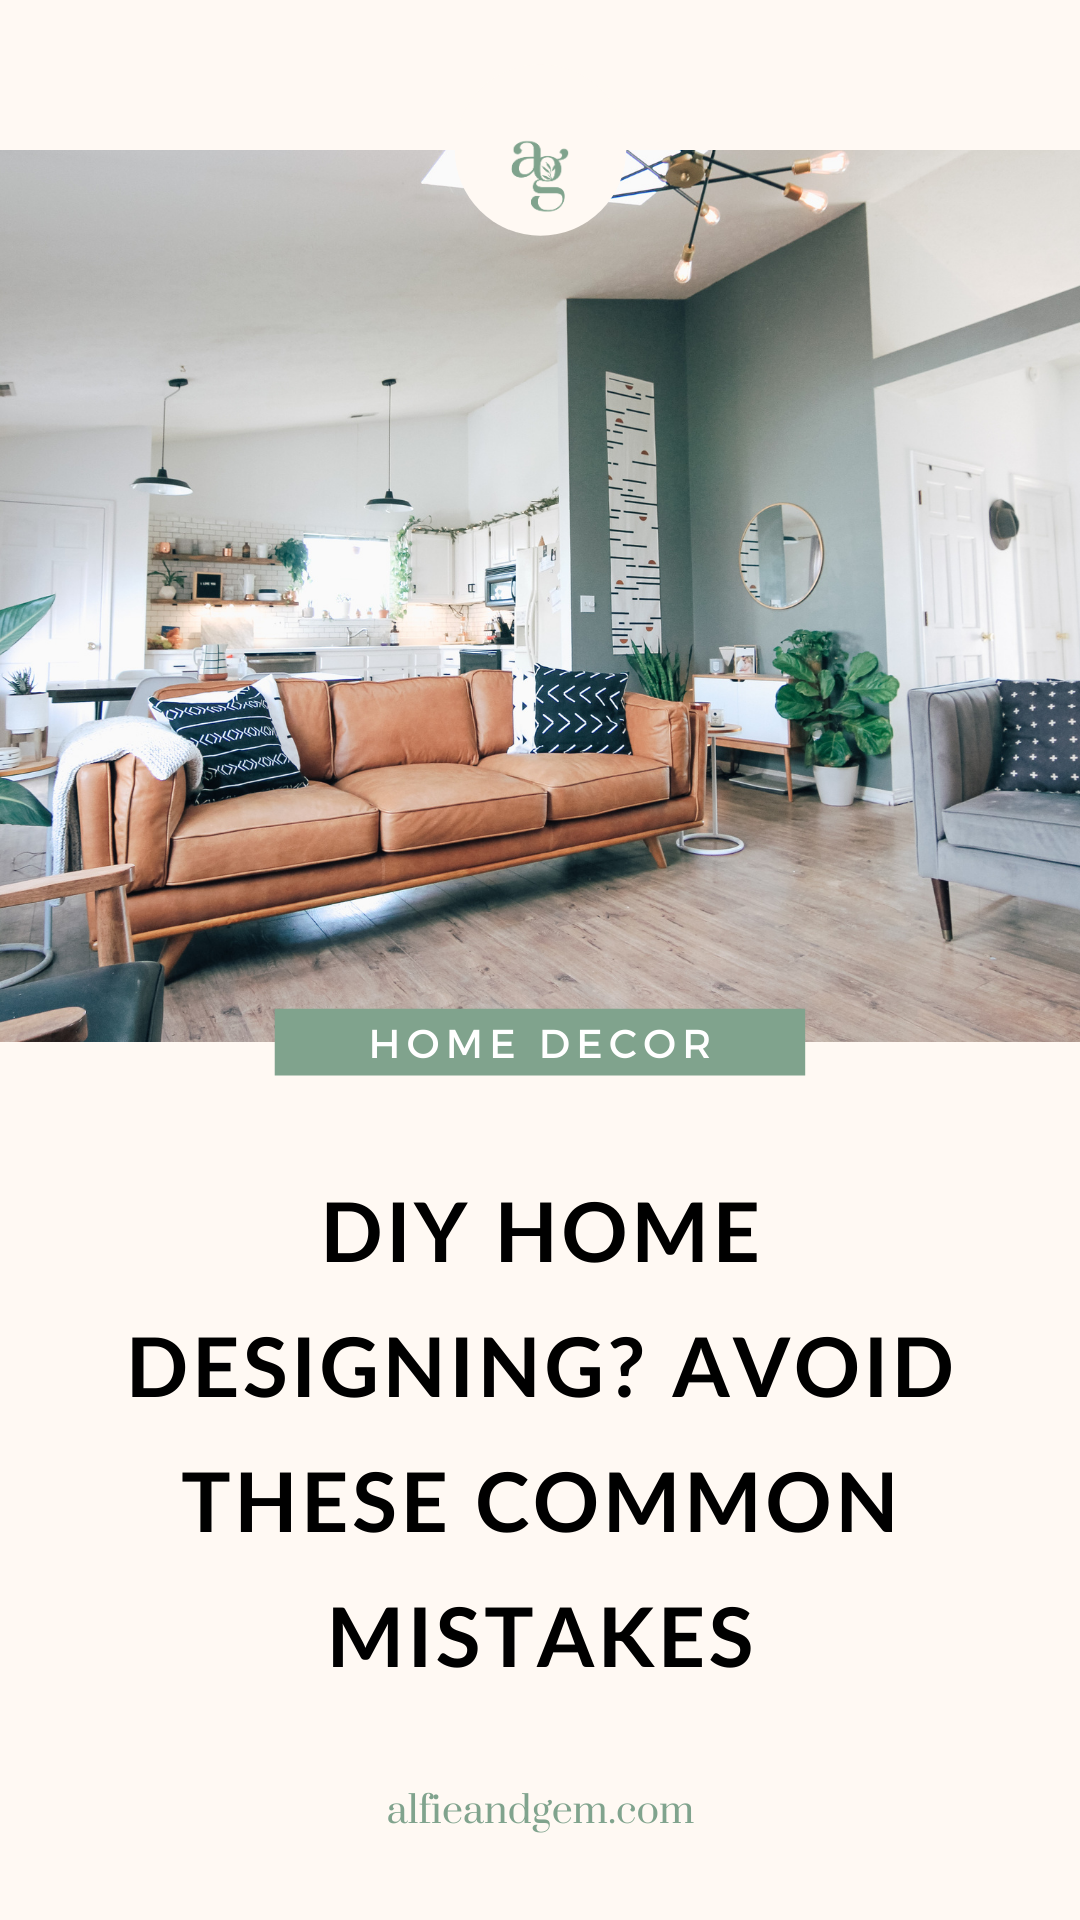 DIY Home Designing Common Mistakes